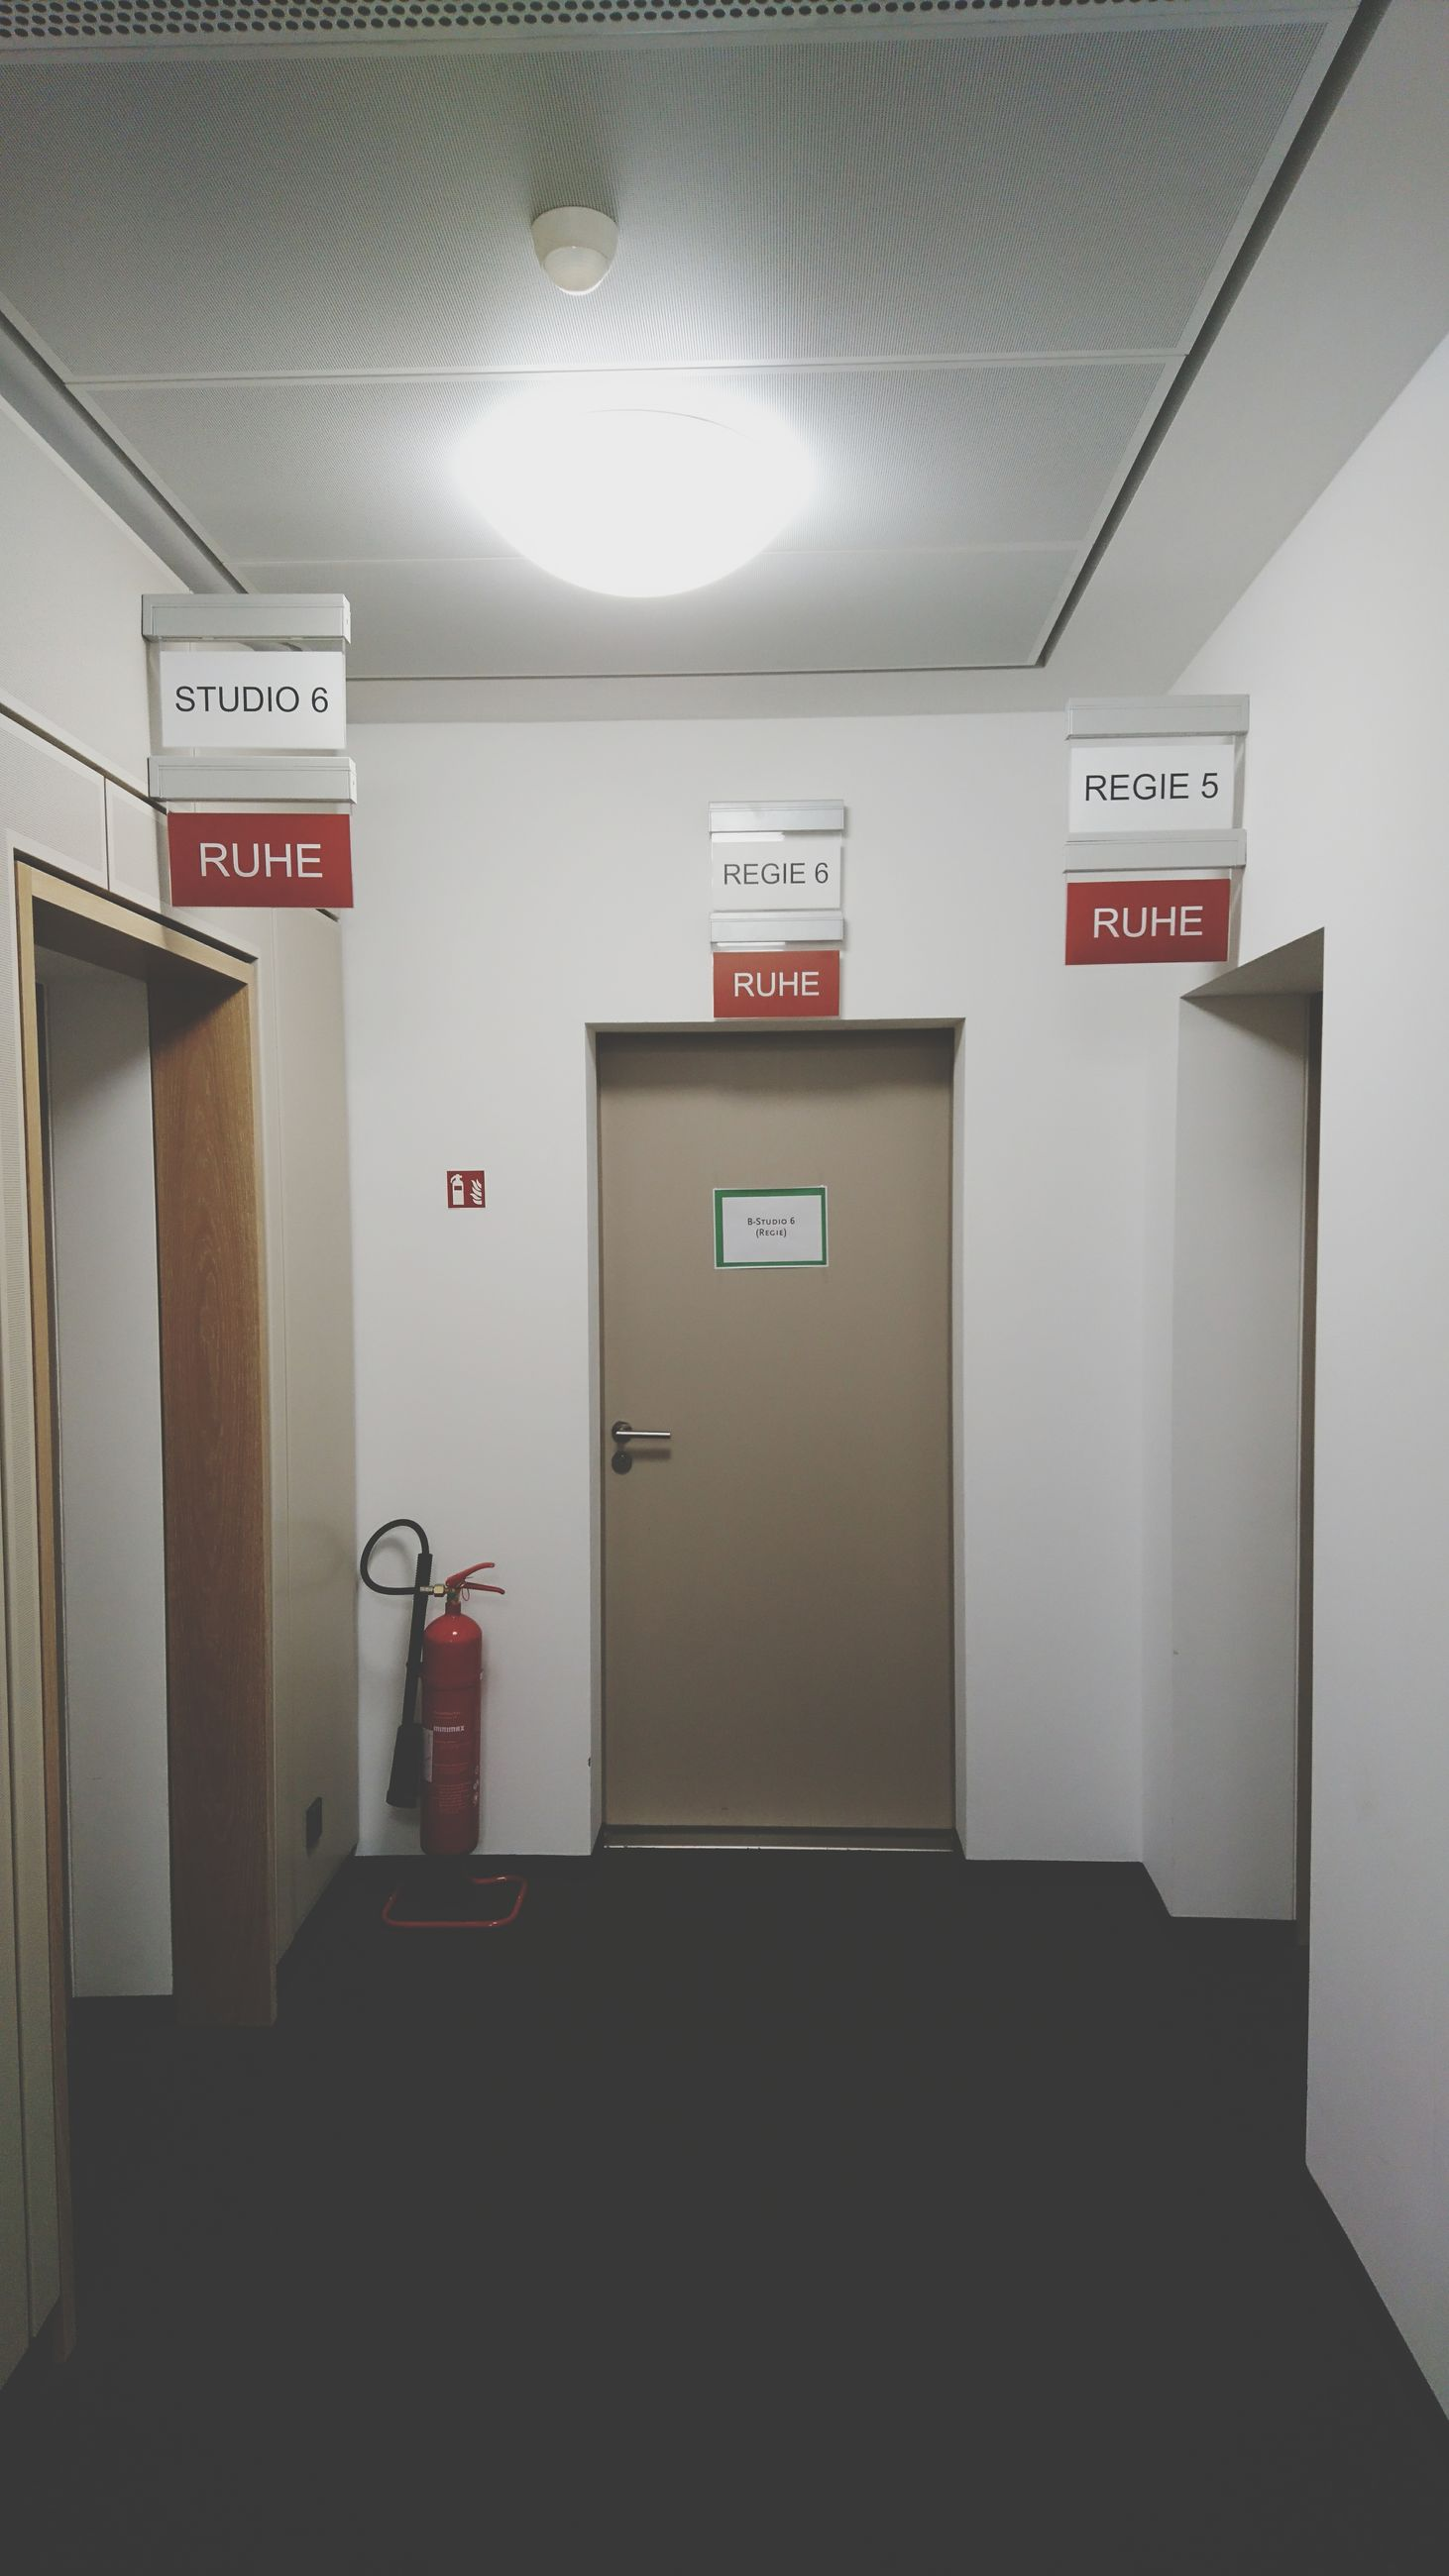 communication, exit sign, text, safety, indoors, emergency exit, information sign, emergency sign, no people, illuminated, emergency equipment, security system